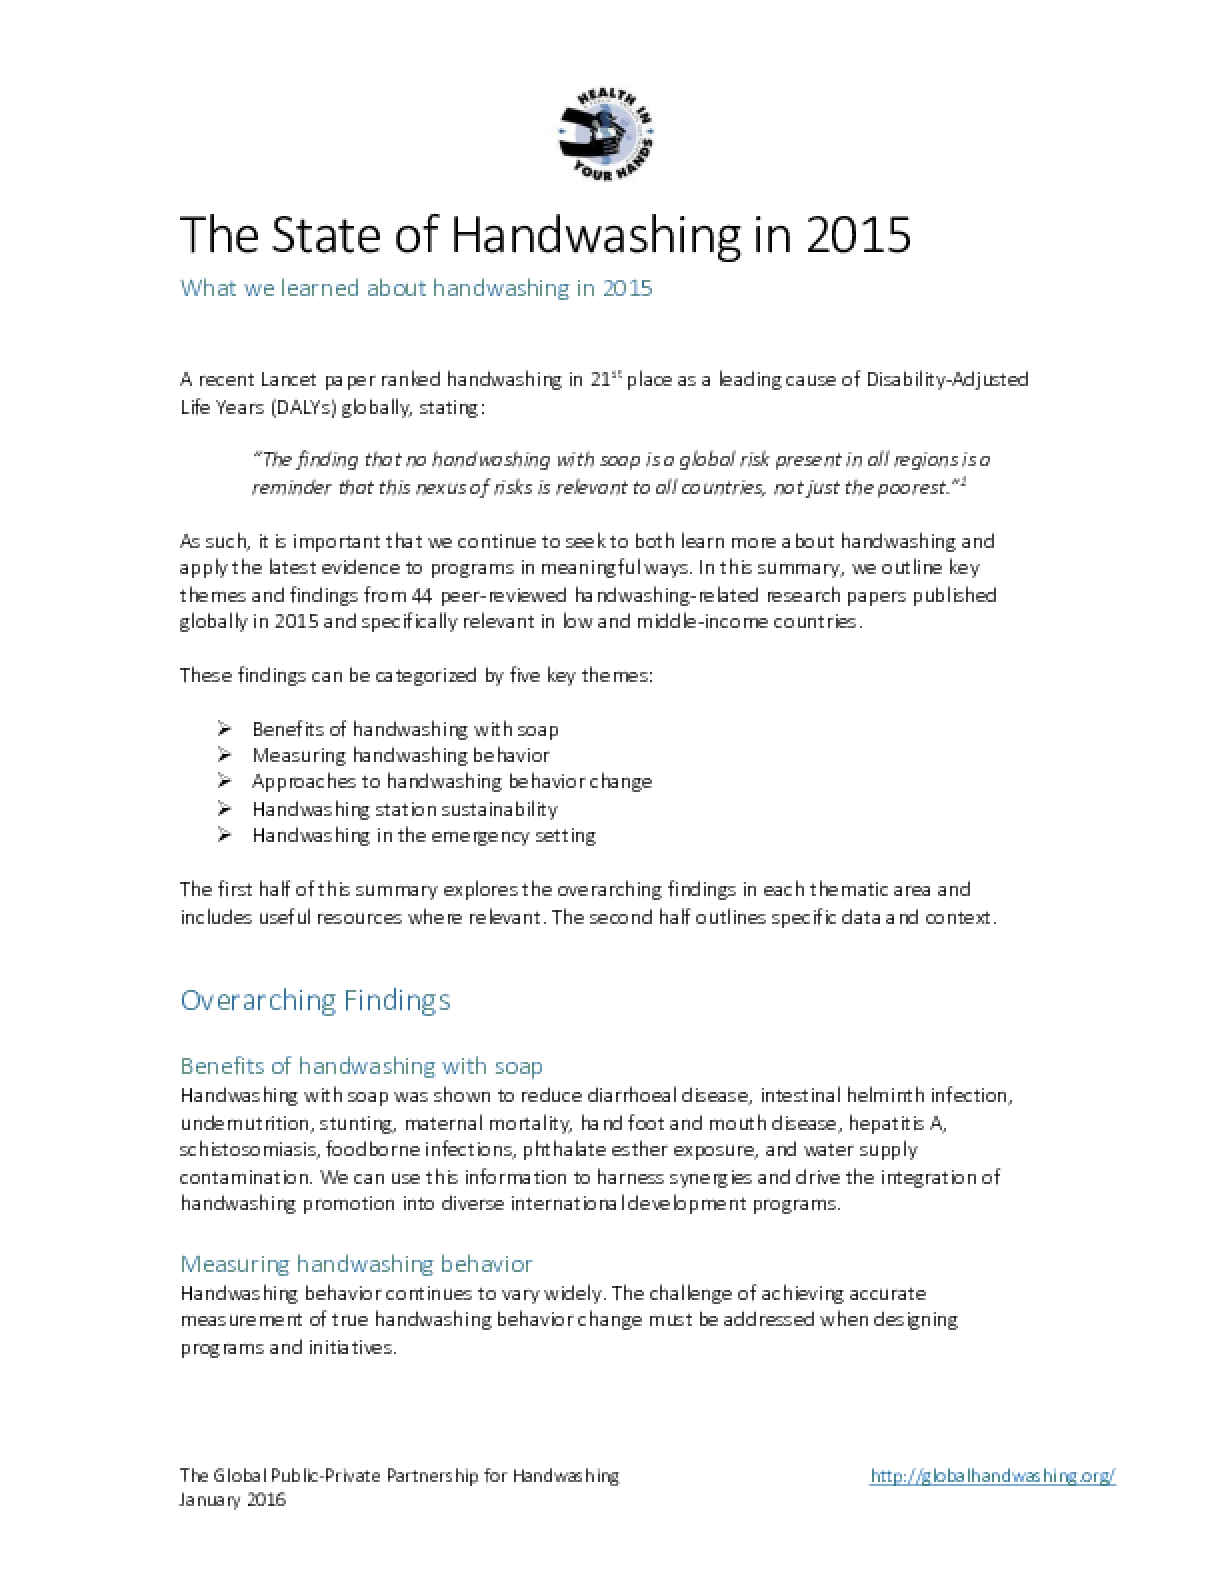 The State of Handwashing in 2015: An Annual Research Summary